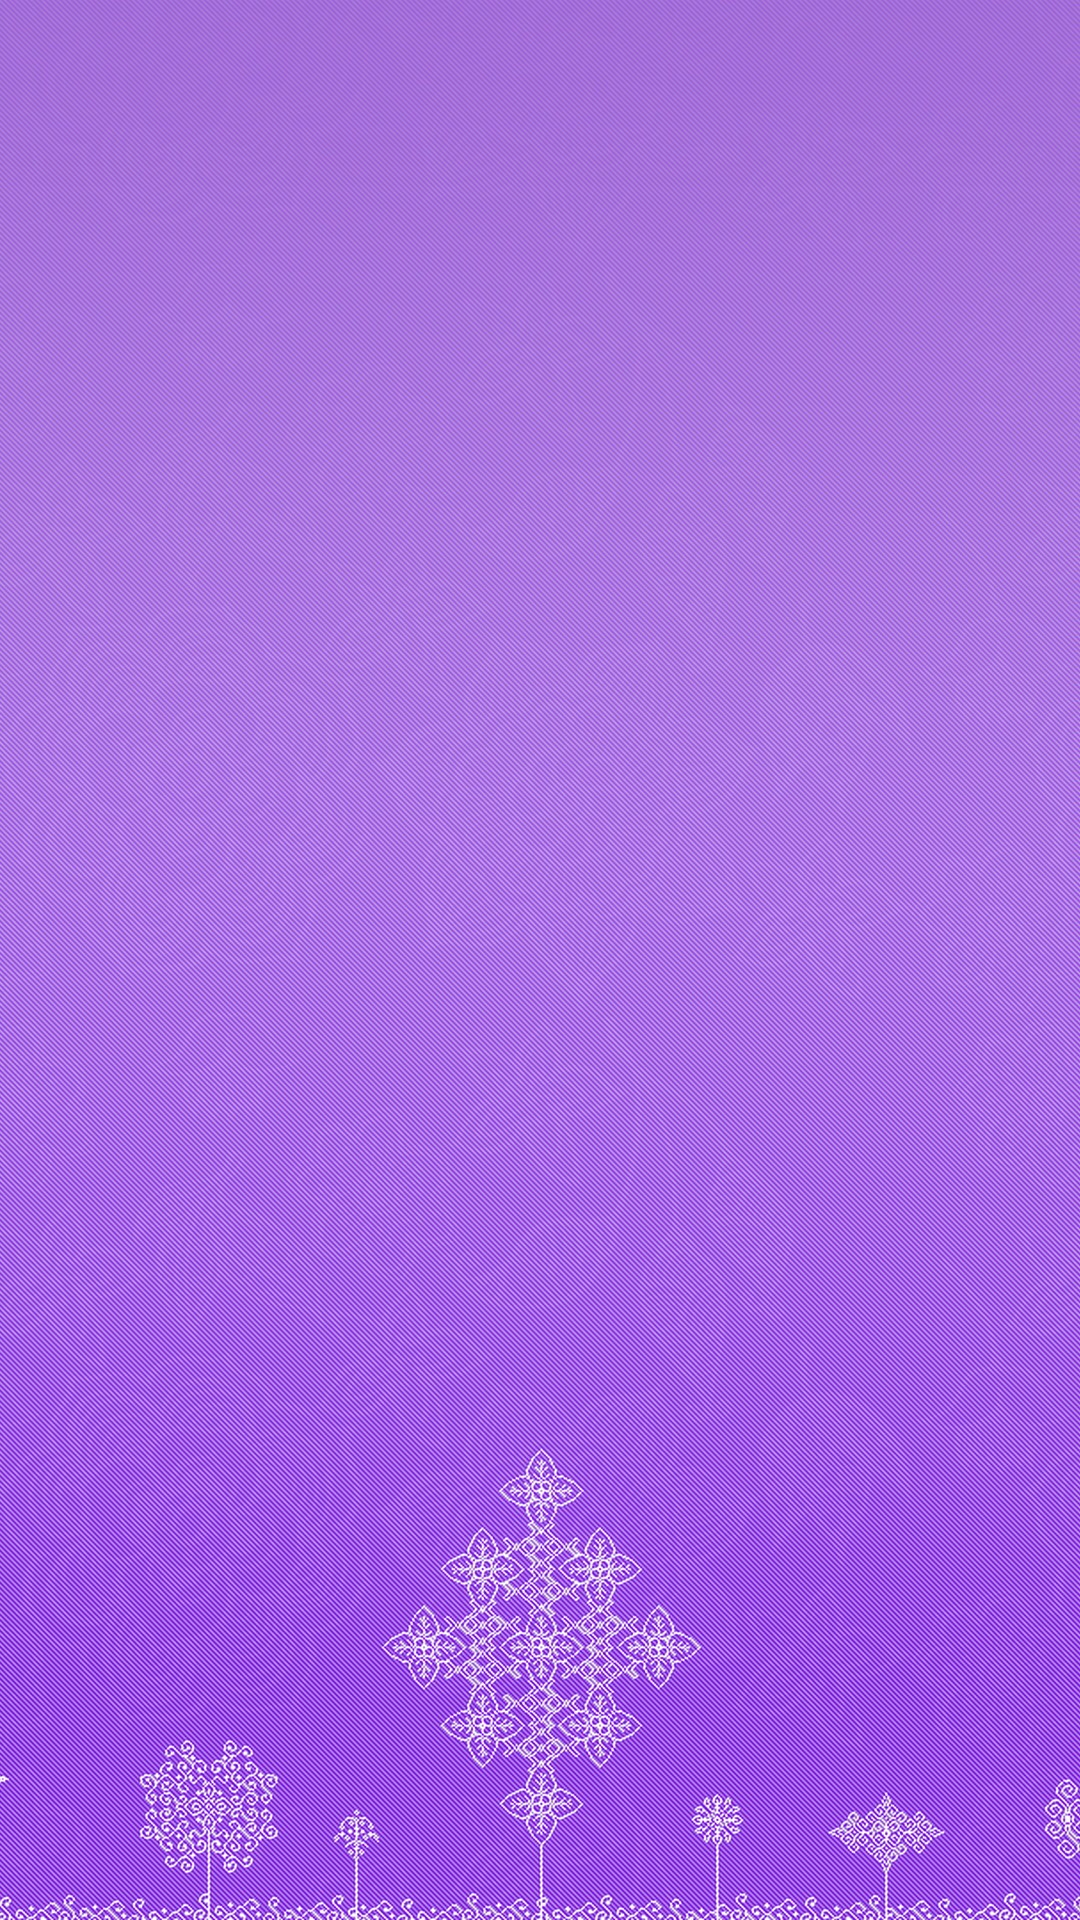 Cute Purple Aesthetic Phone 8 Wallpaper with high-resolution 1080x1920 pixel. Download all Mobile Wallpapers and Use them as wallpapers for your iPhone, Tablet, iPad, Android and other mobile devices